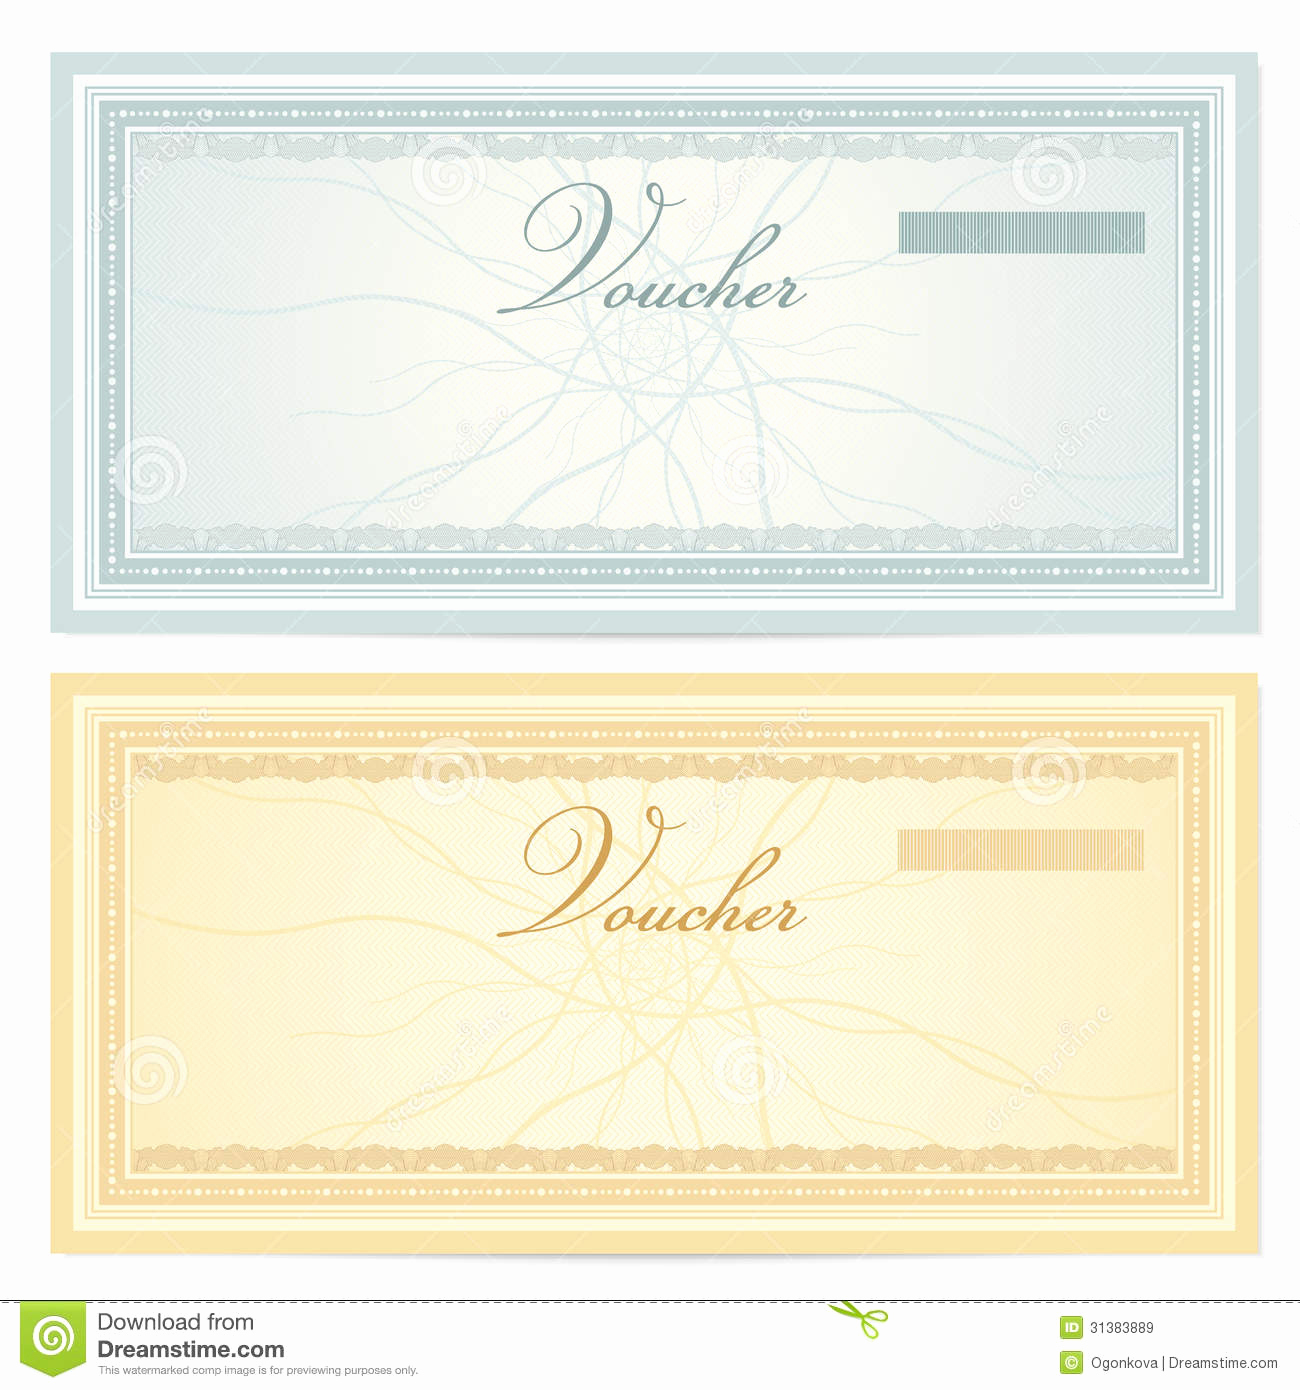 Money Gift Certificate Template Inspirational Gift Certificate Voucher Template Pattern Stock Vector